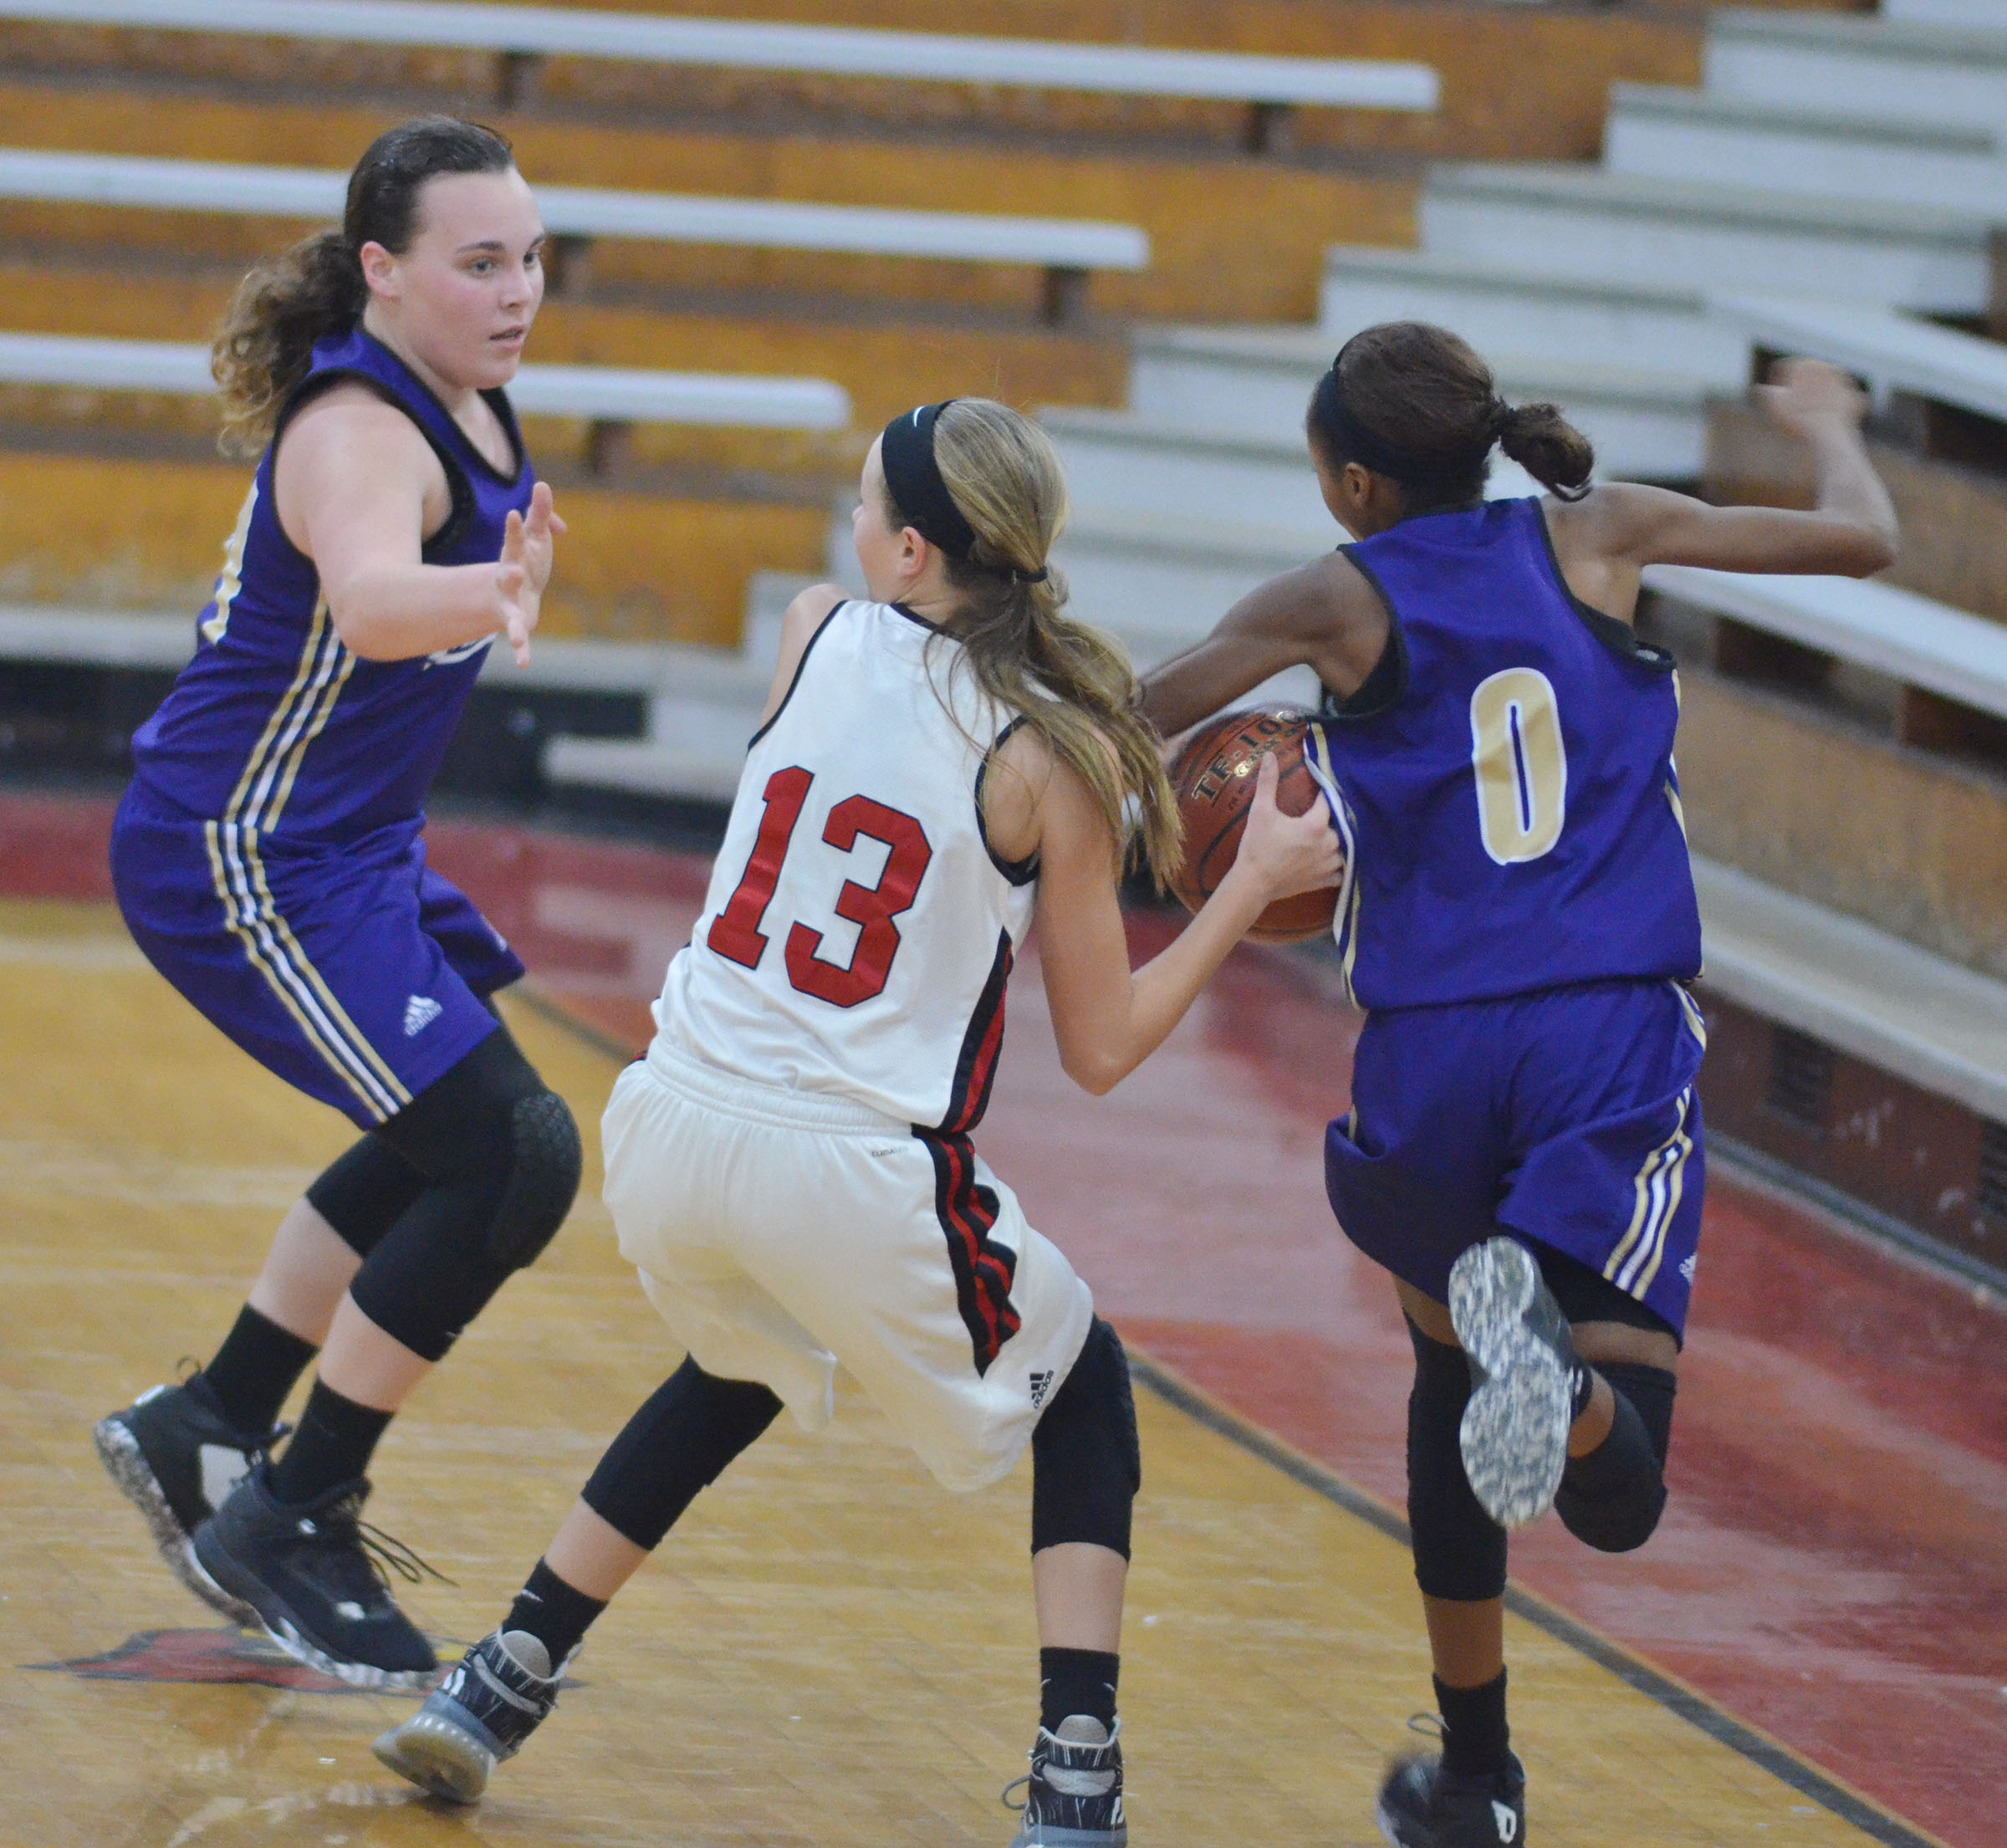 CHS freshman Katelyn Miller, at left, and Campbellsville Middle School seventh-grader Bri Gowdy play defense.